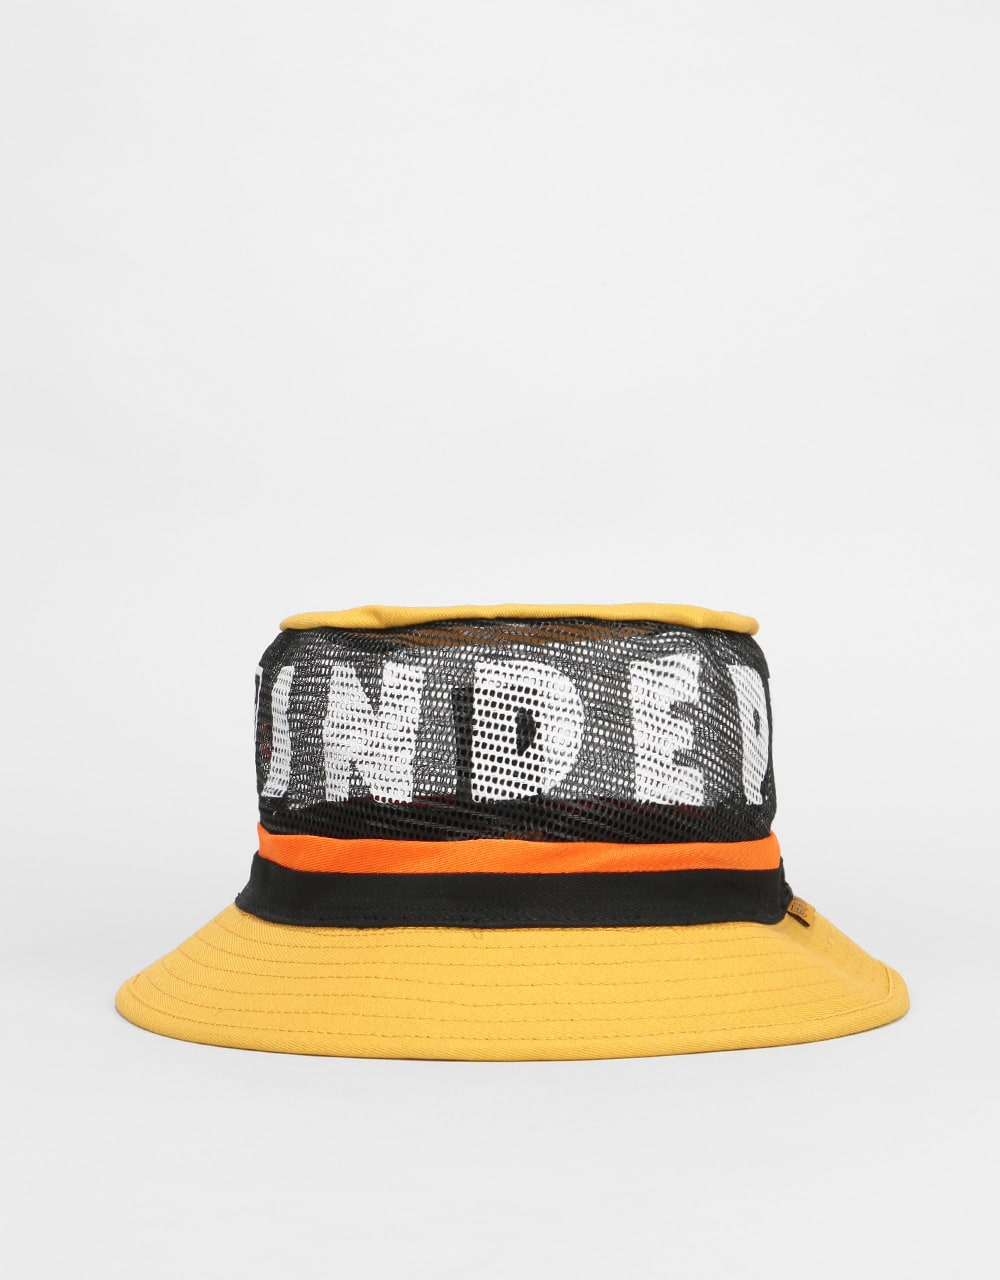 Brixton x Independent Hardy Bucket Hat - Yellow  1deef155894f